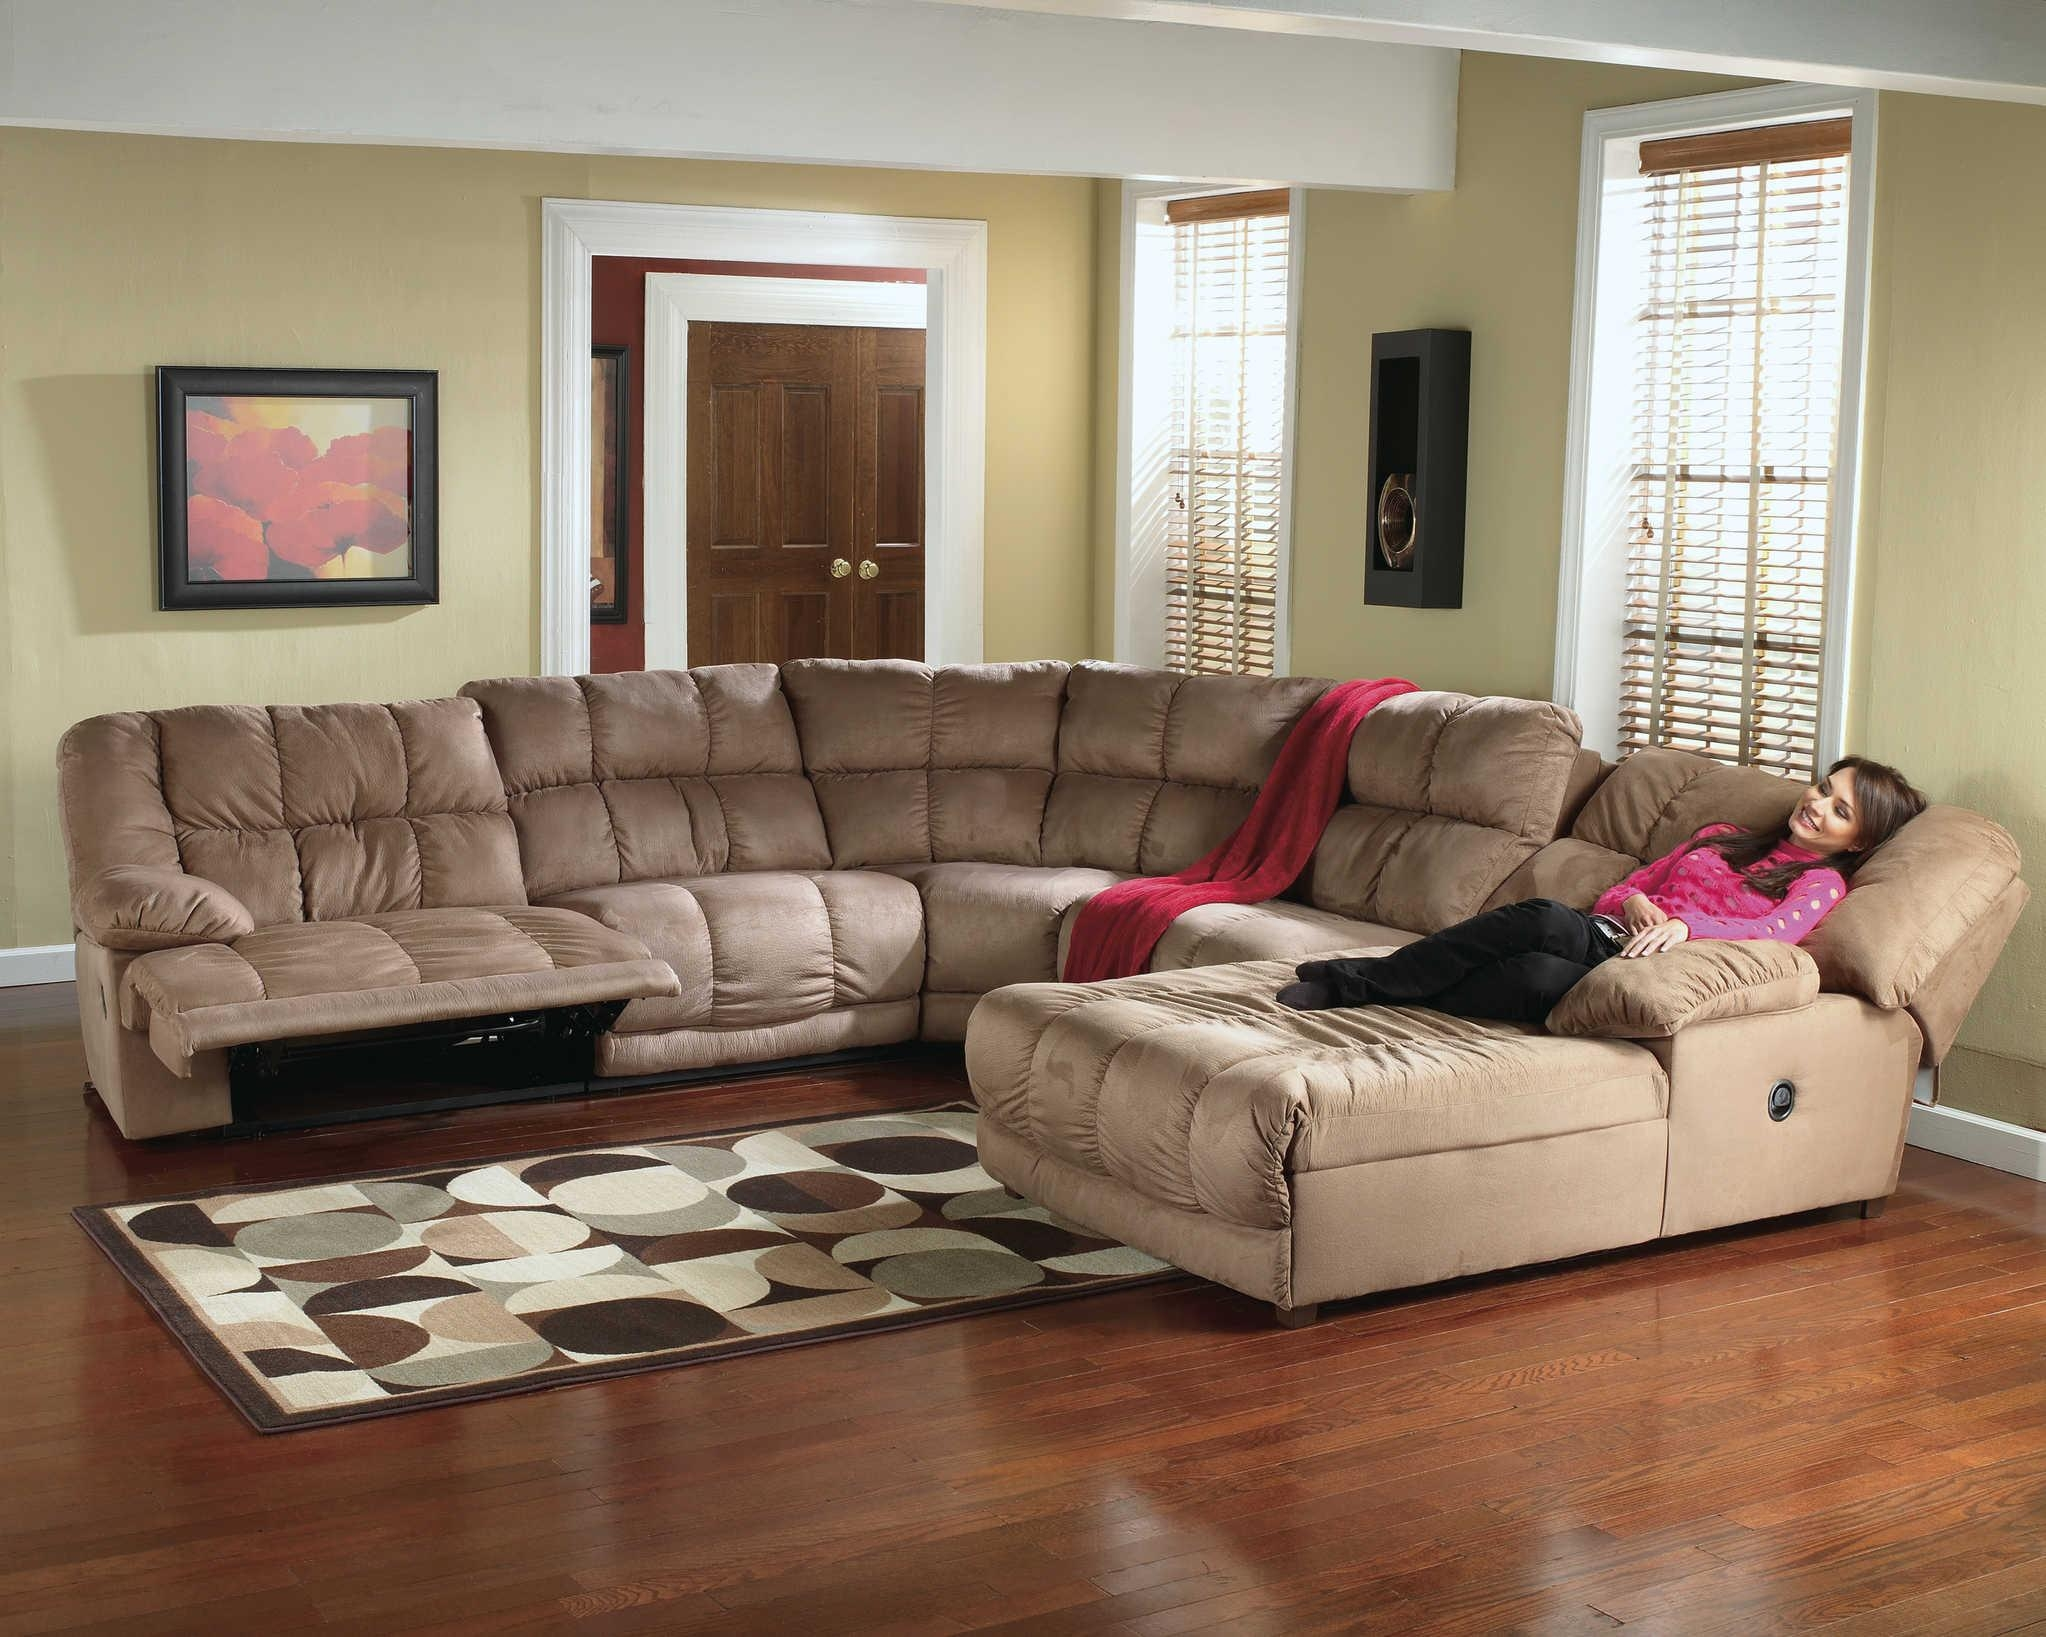 Luxury Microfiber Sectional Sofas With Chaise 62 For Braxton Regarding Braxton Sectional Sofas (Image 17 of 20)